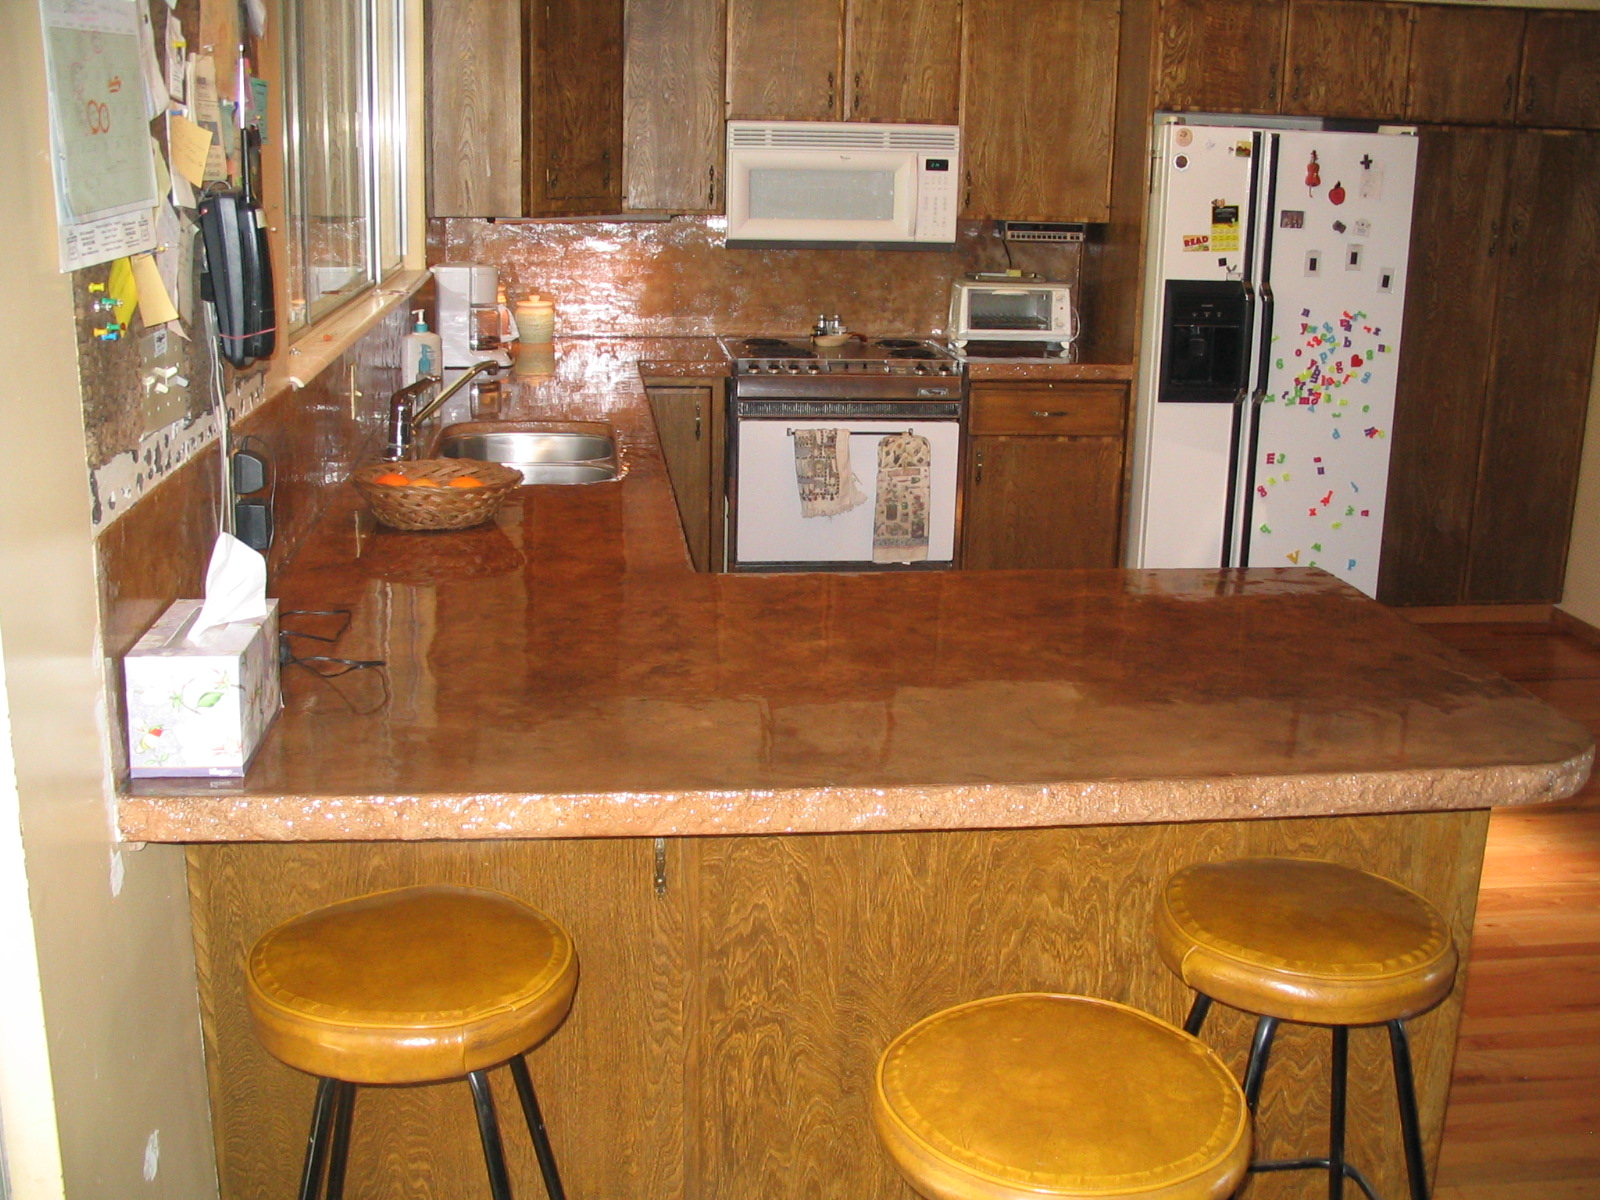 laminate over d countertops beautiful countertop i lane look diy y wet concrete counters poured averie sealer supplies